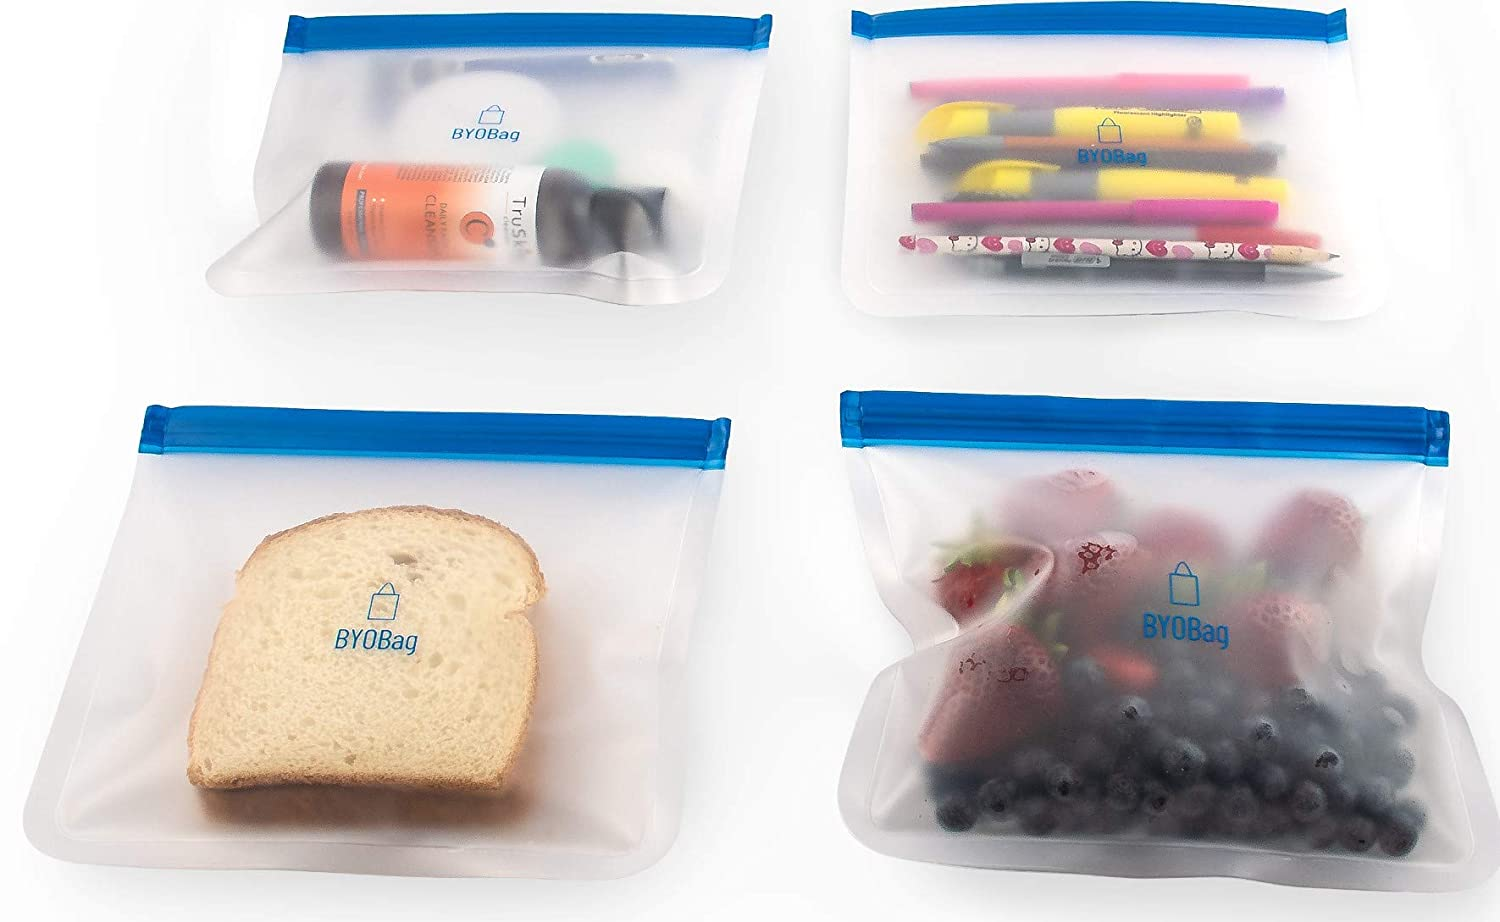 BYOBag – 4 Pack of Reusable Sandwich Bags, Snack Bag, Multipurpose Storage Bag, Perfect For Cosmetics, Stationery and Travel Items, Eco-Friendly Ziplock Bag, FDA-Approved and BPA-Free